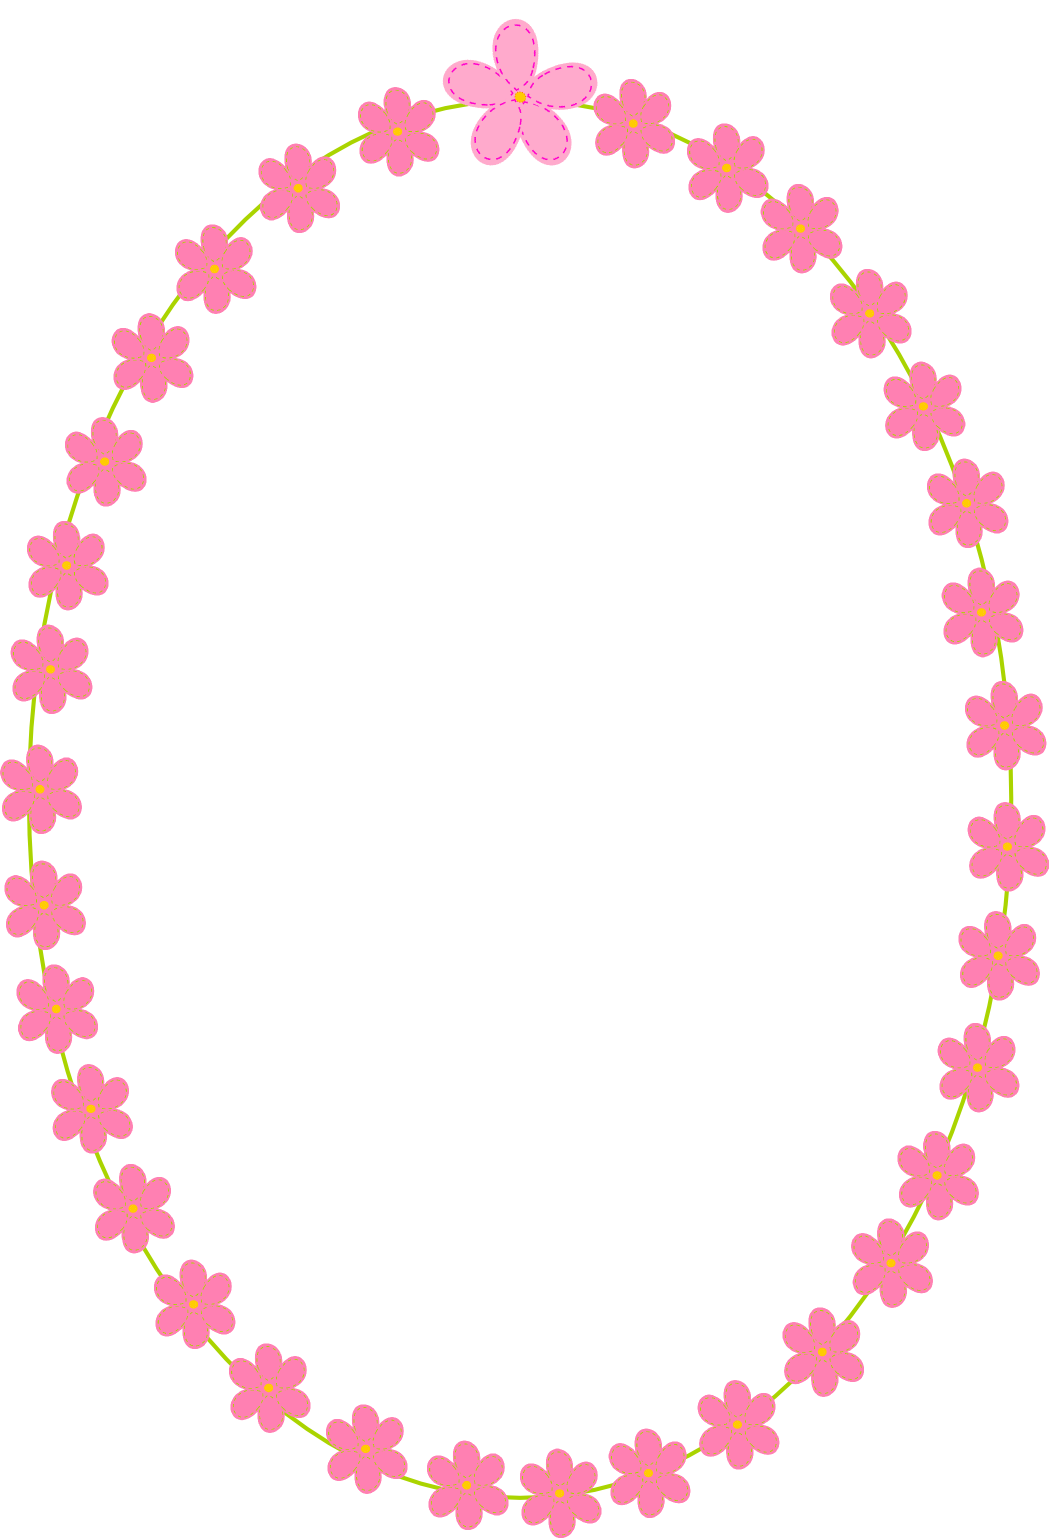 Circle clipart floral. Free digital flower frames